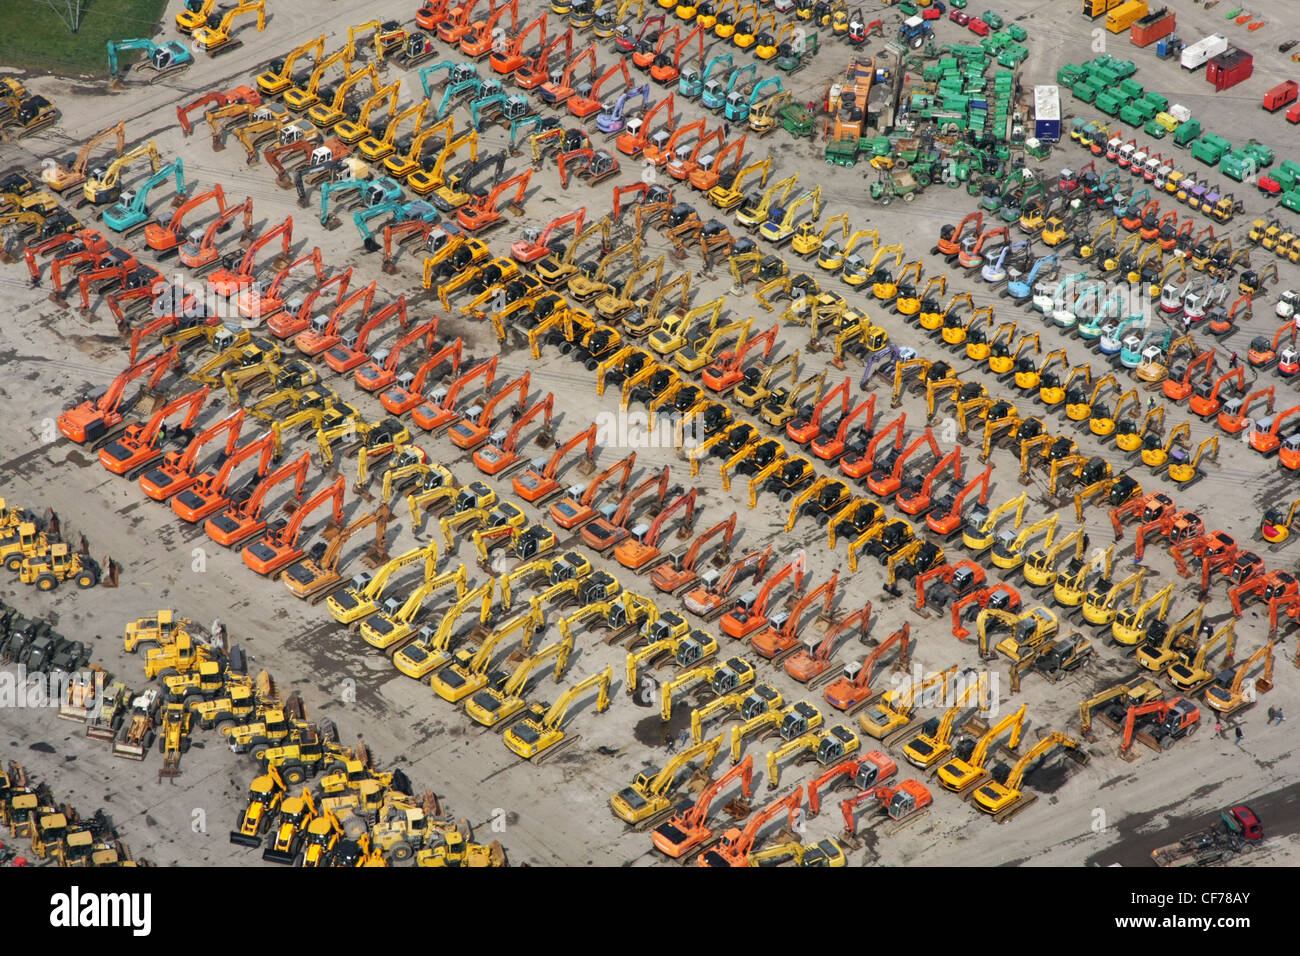 aerial view of jcb diggers lined up for an auction sale stock